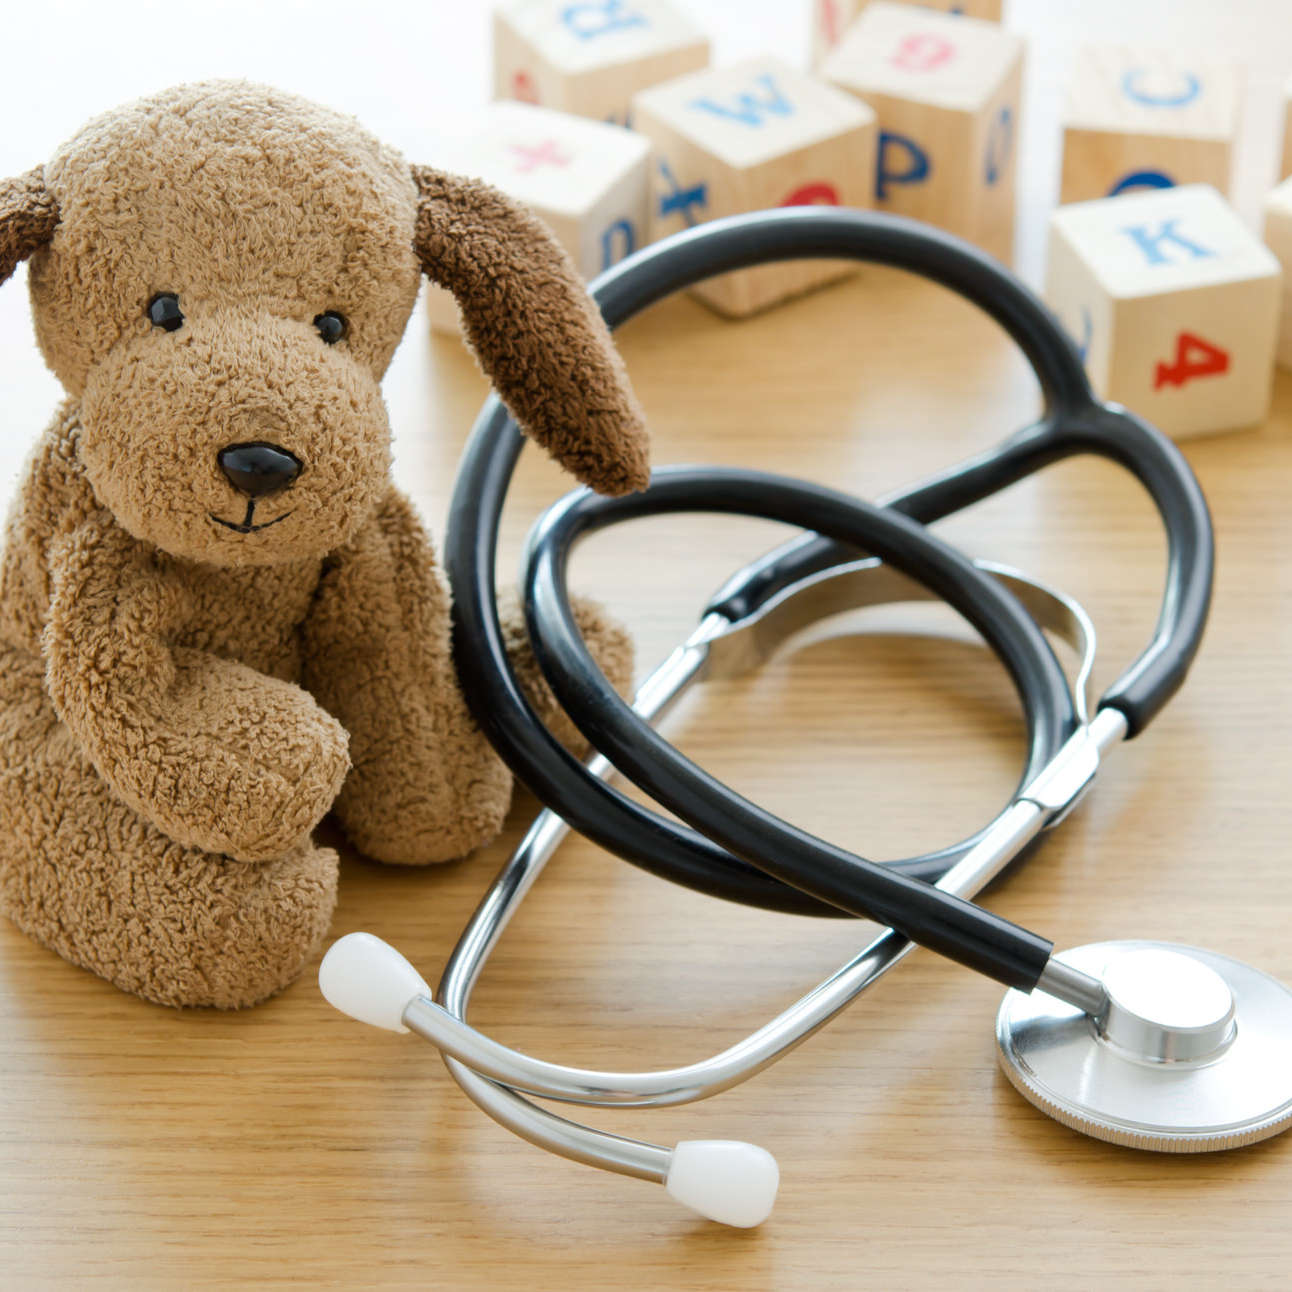 Pediatrics.,Puppy,Toy,With,Medical,Equipment